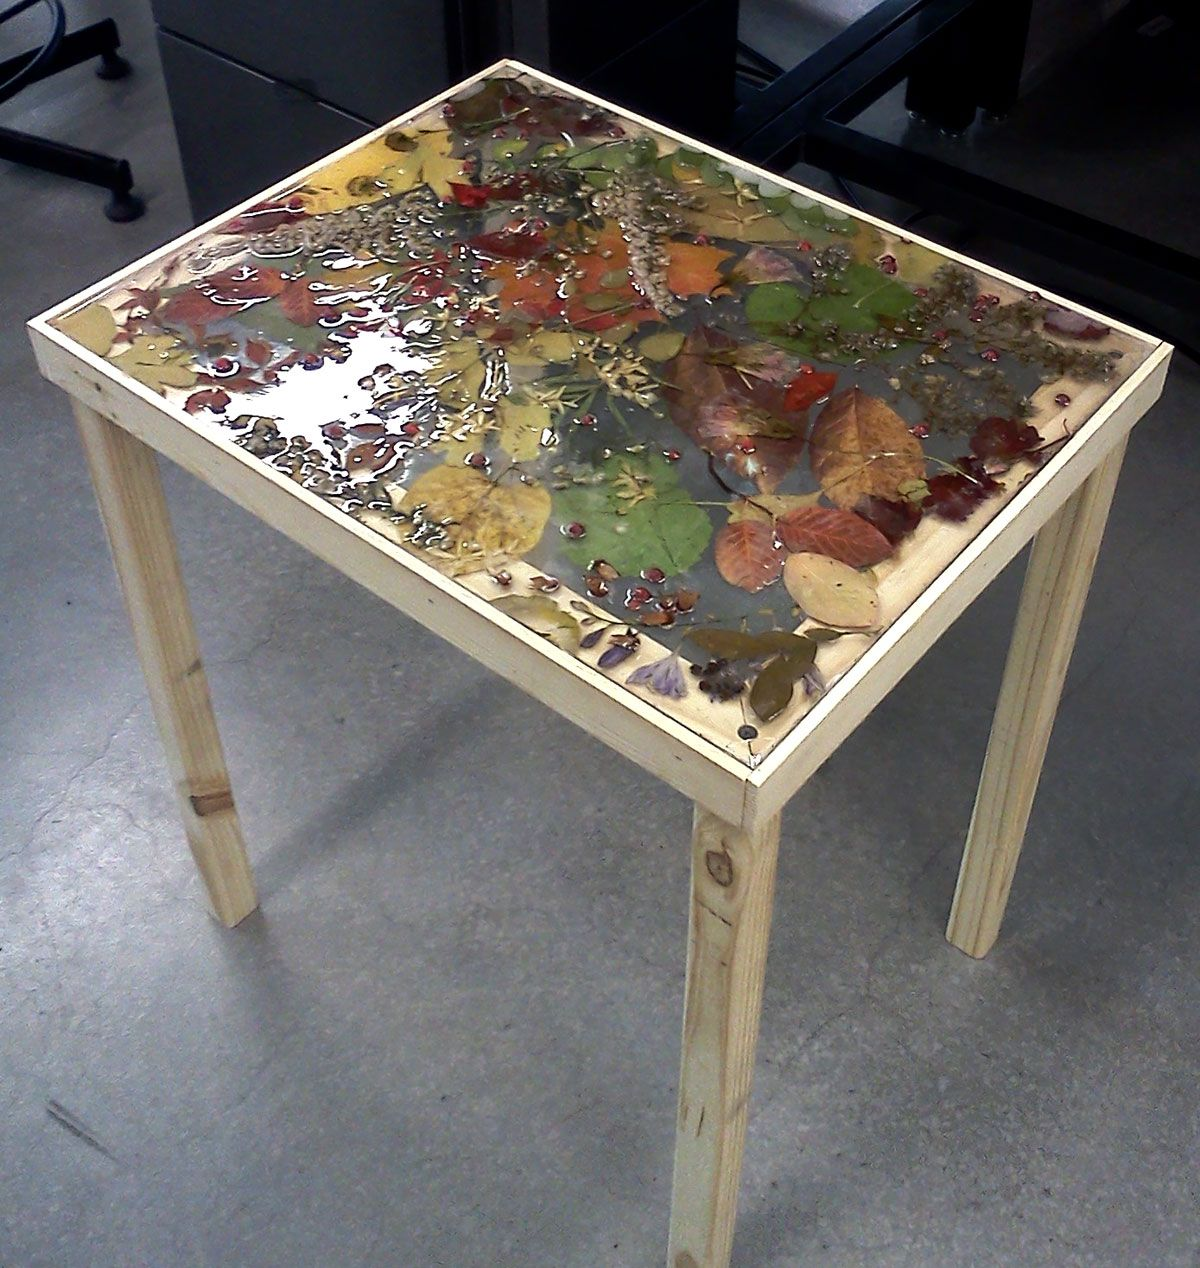 Resin Ideas Pressed Leaves And Plants In Resin On Handcrafted